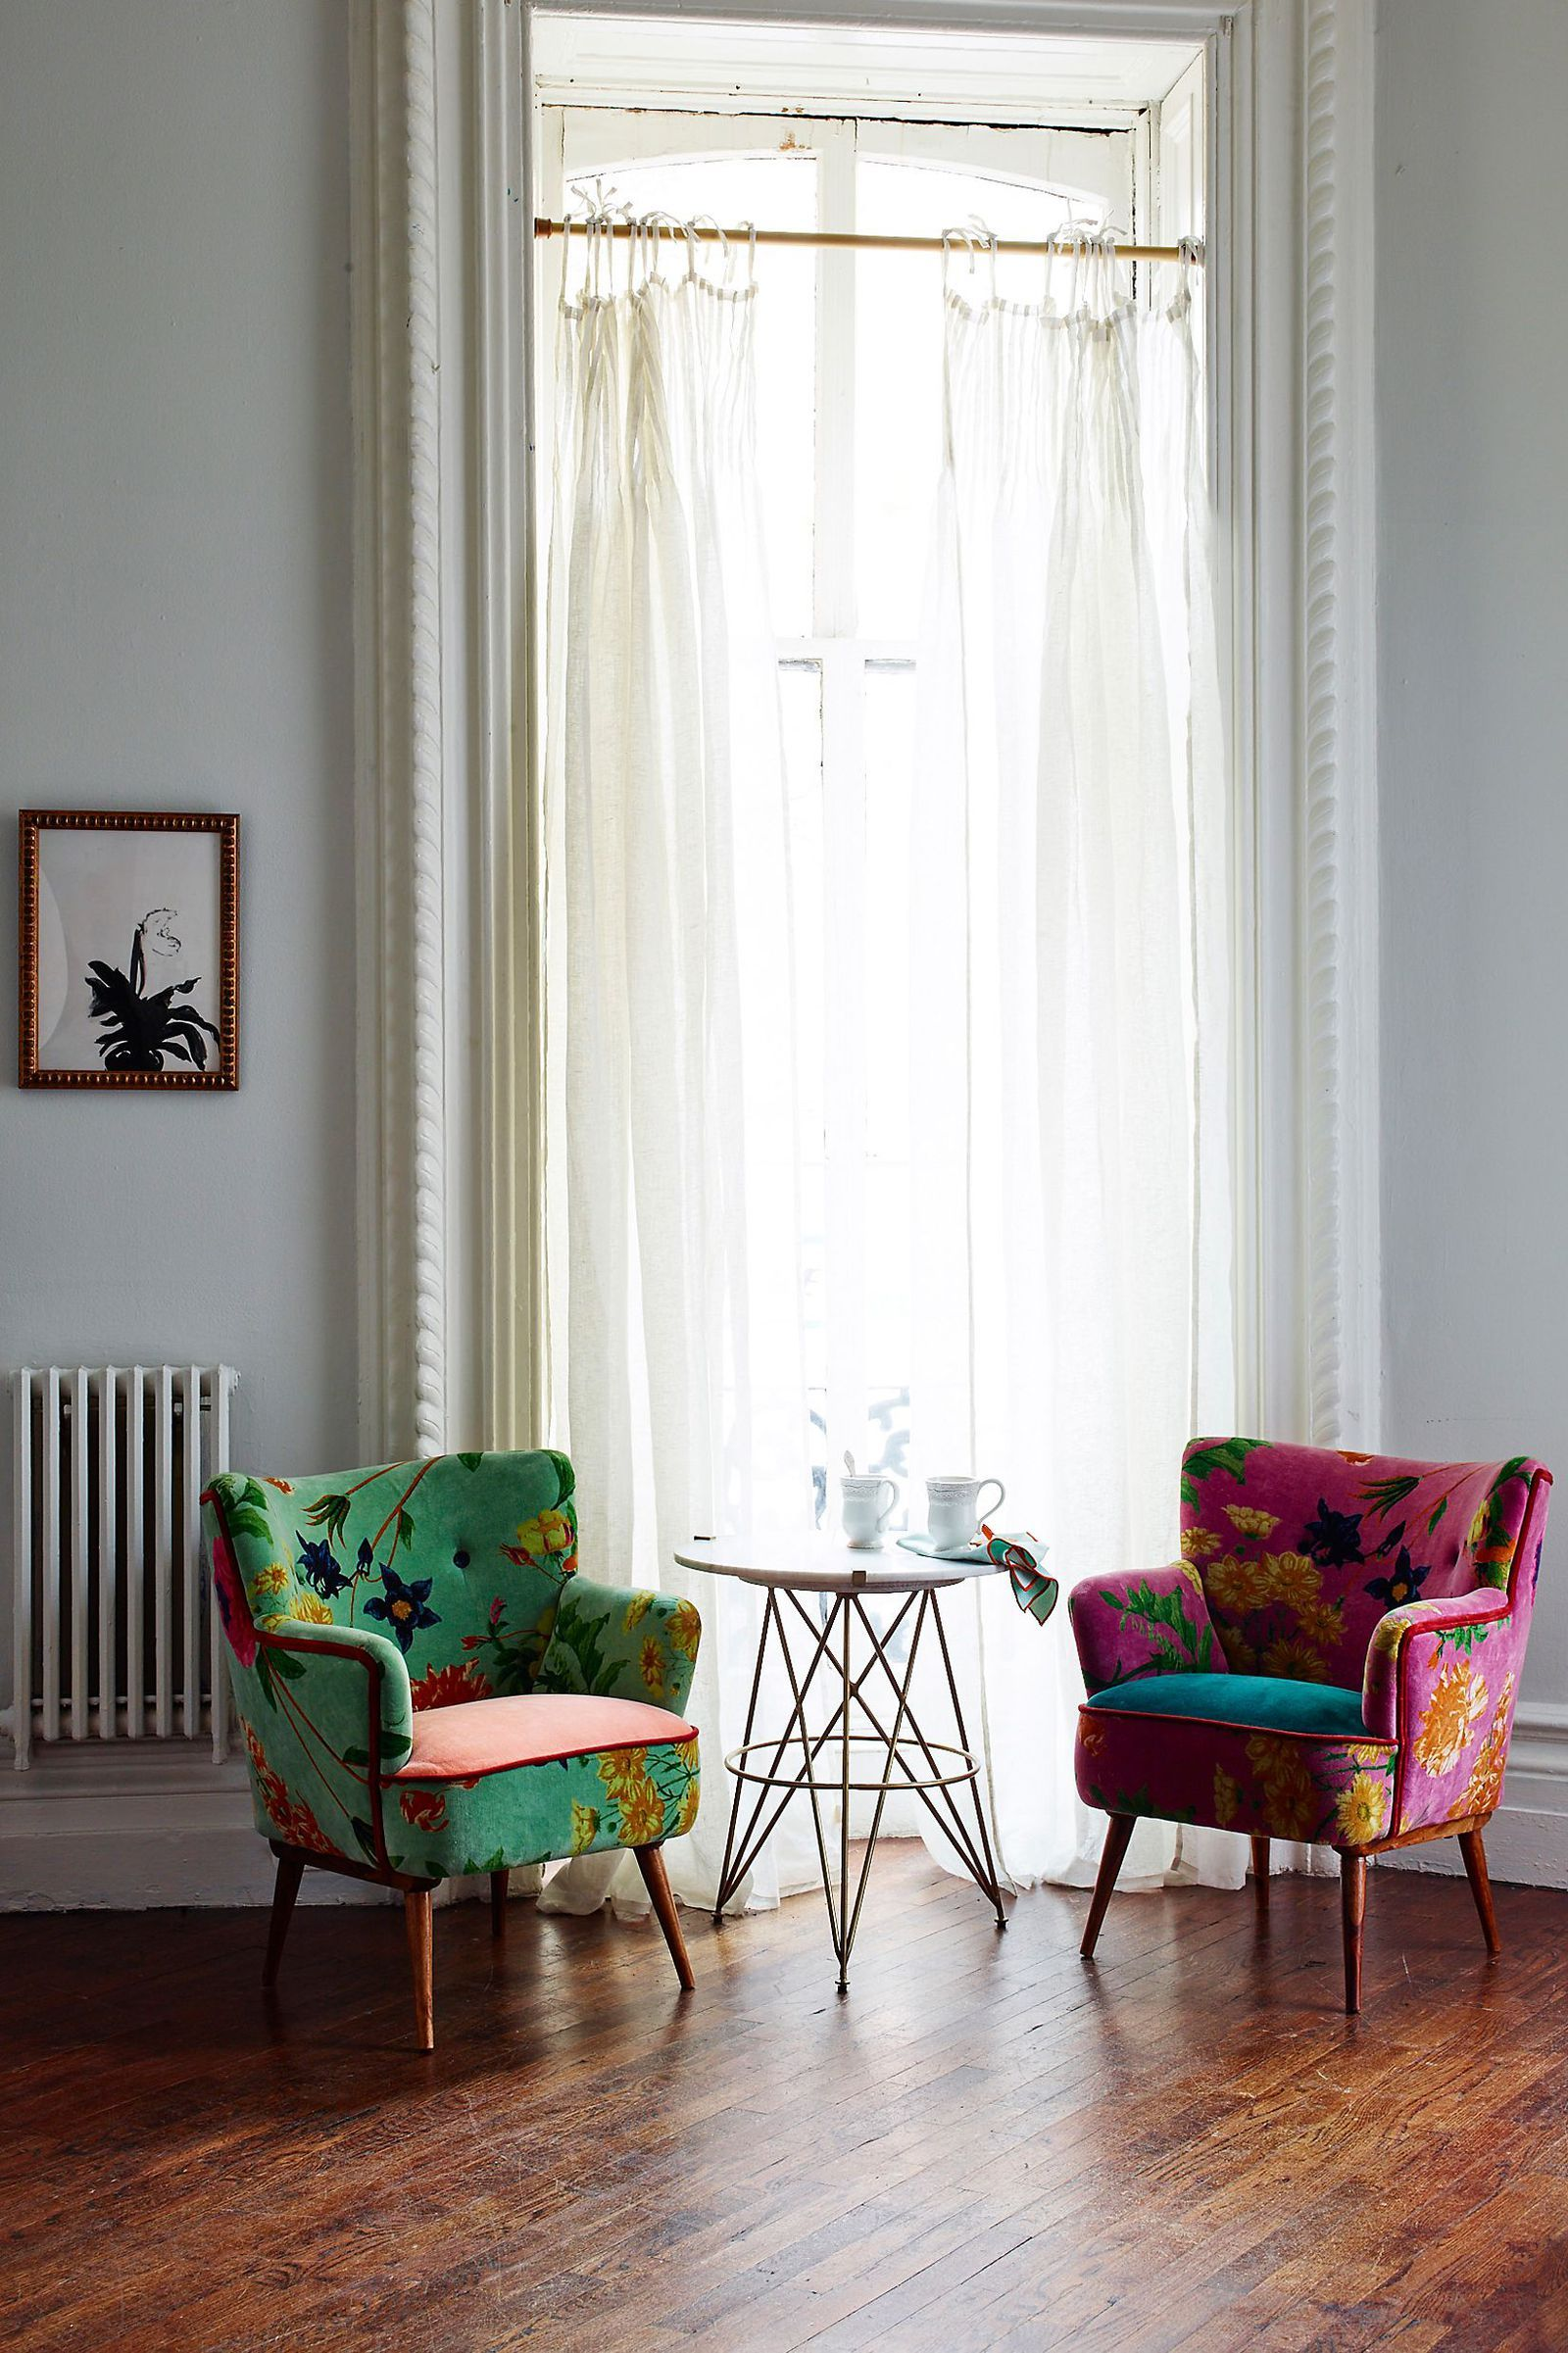 12 Accent Chairs That Will Give Your Living Room New Life Accent Chairs For Living Room Home Decor Living Room Chairs #statement #chairs #for #living #room